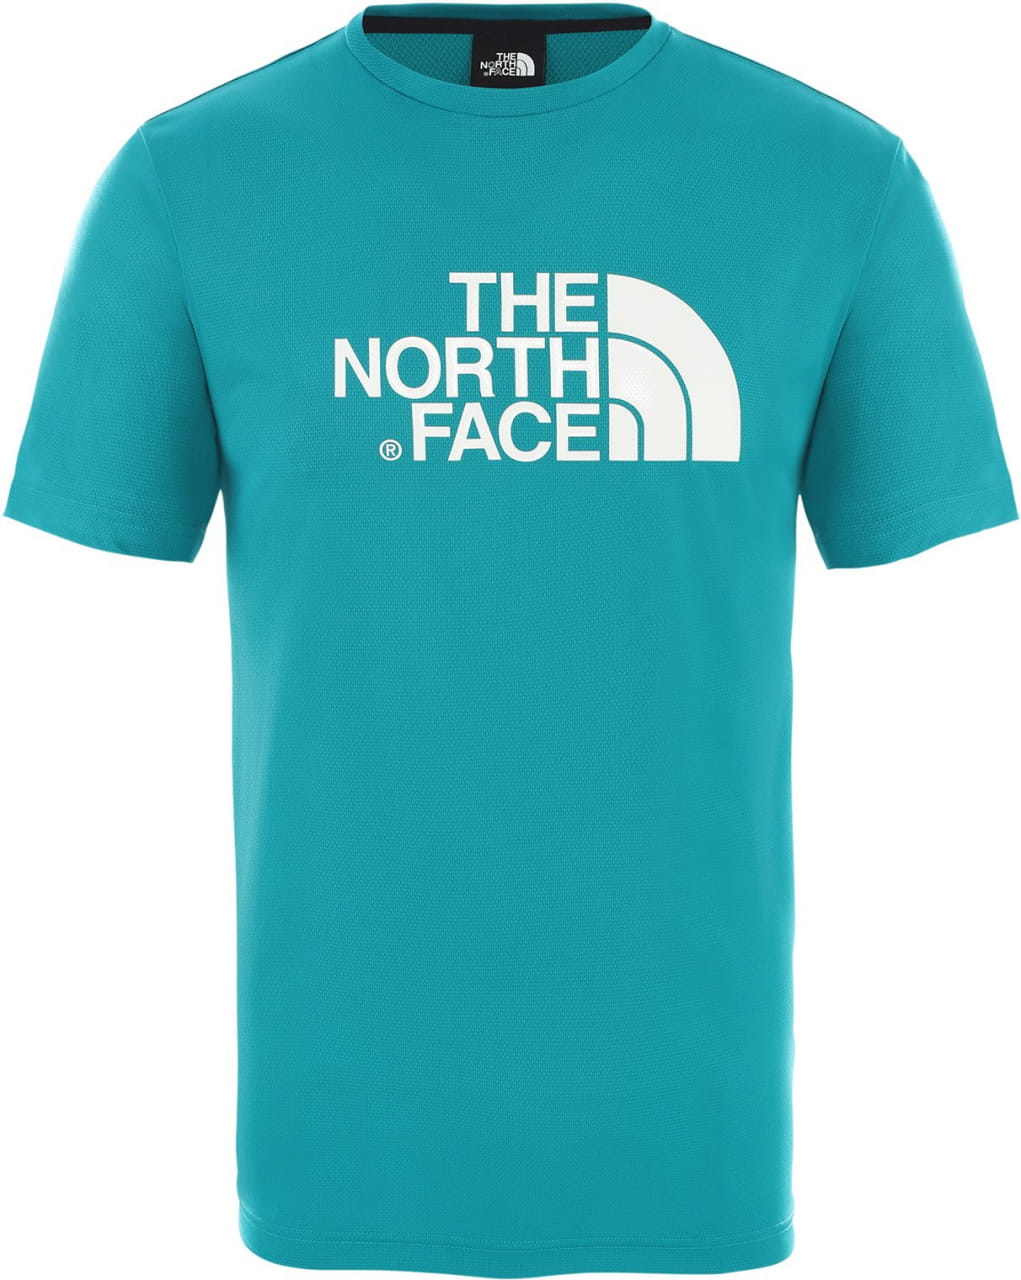 Pánské tričko The North Face Men's Tanken T-Shirt